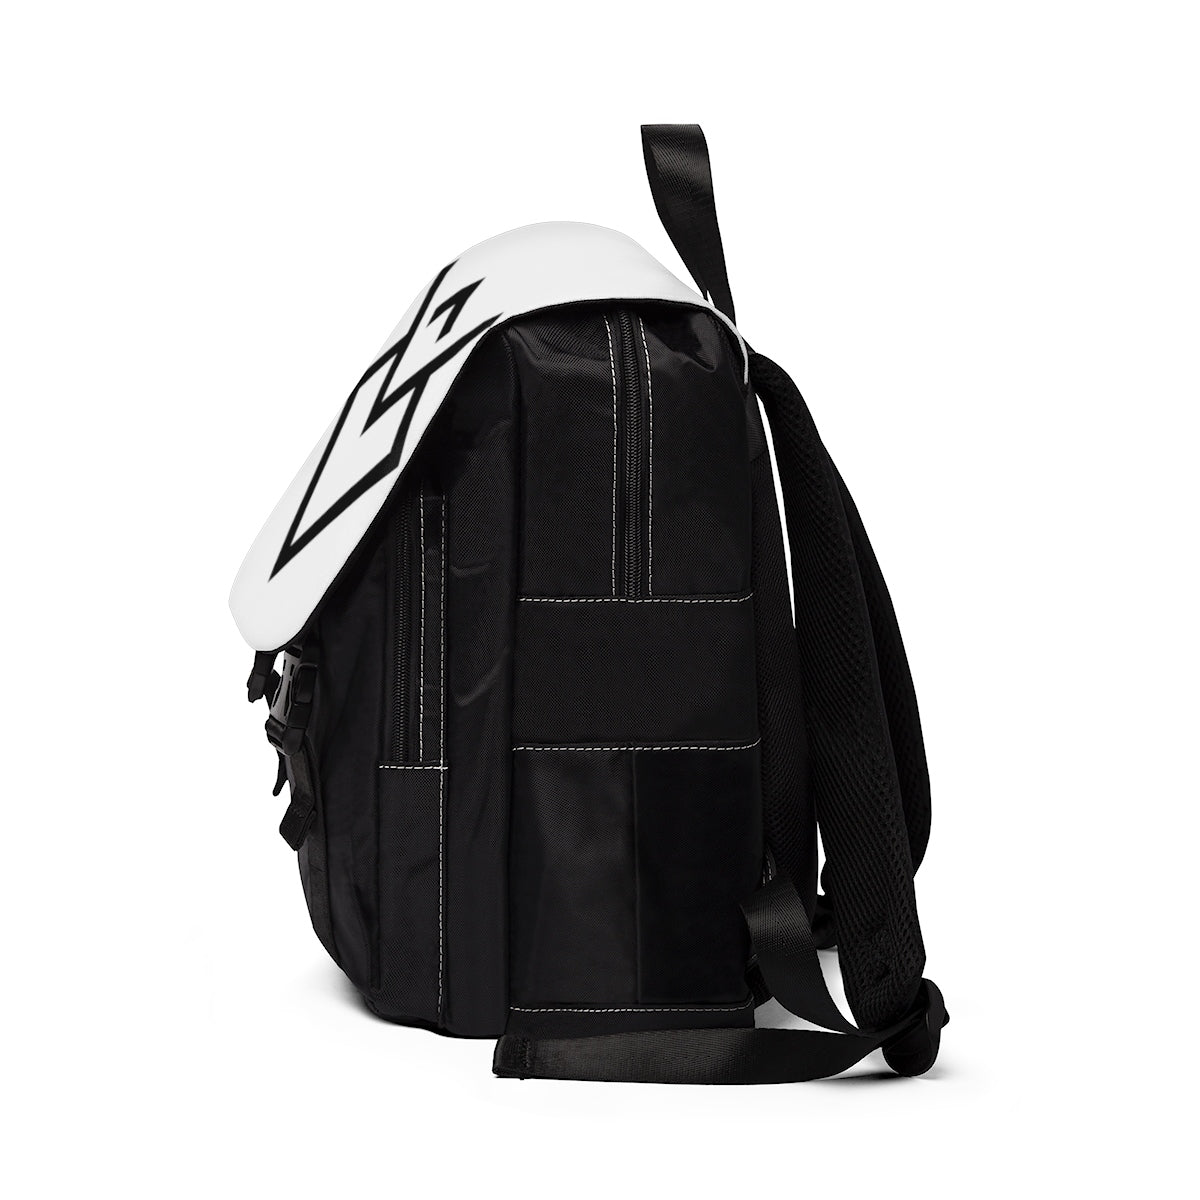 Mantis Unisex Casual Shoulder Backpack